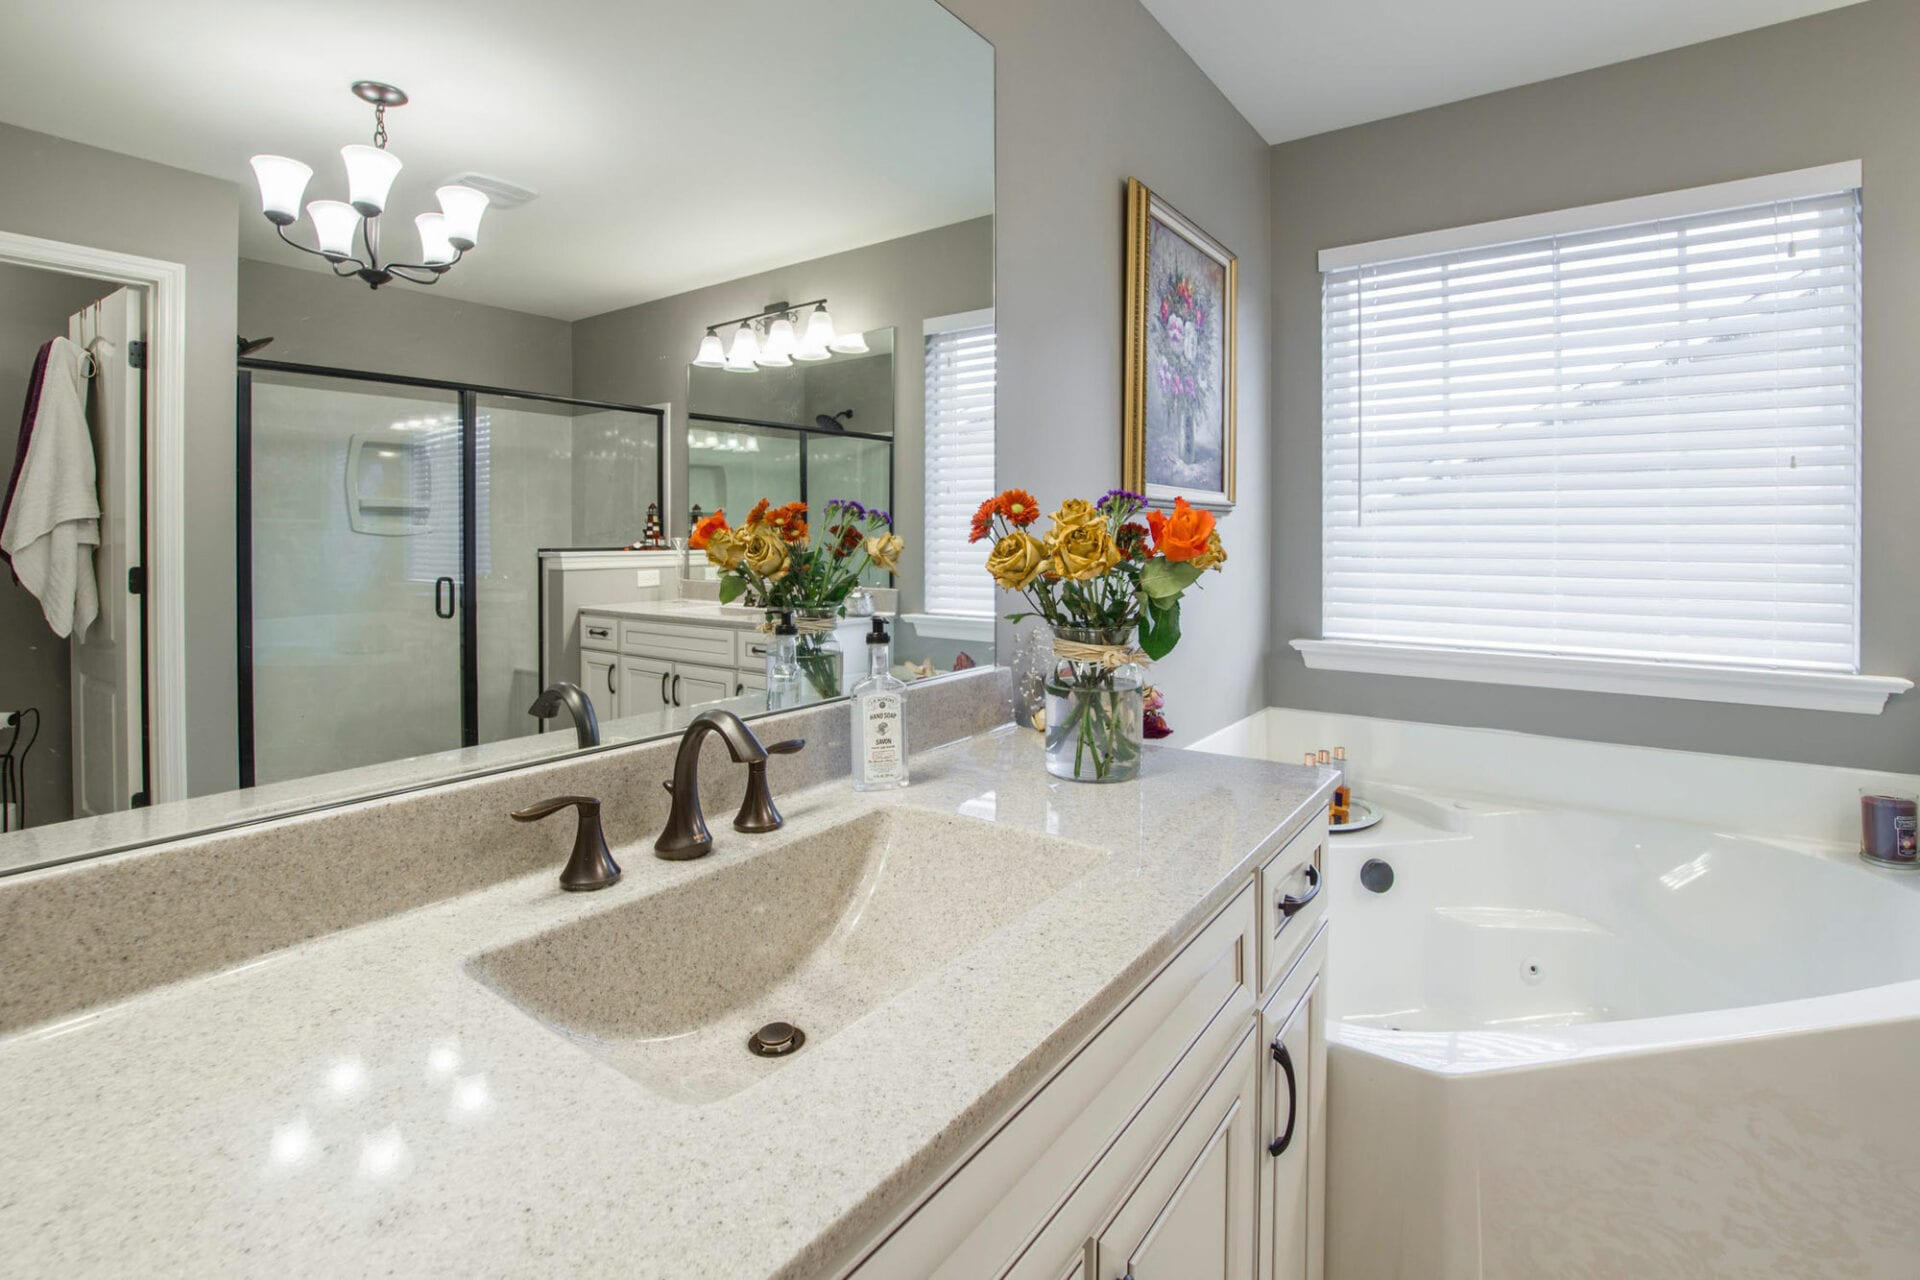 Bathroom with bathtub and visible shower area